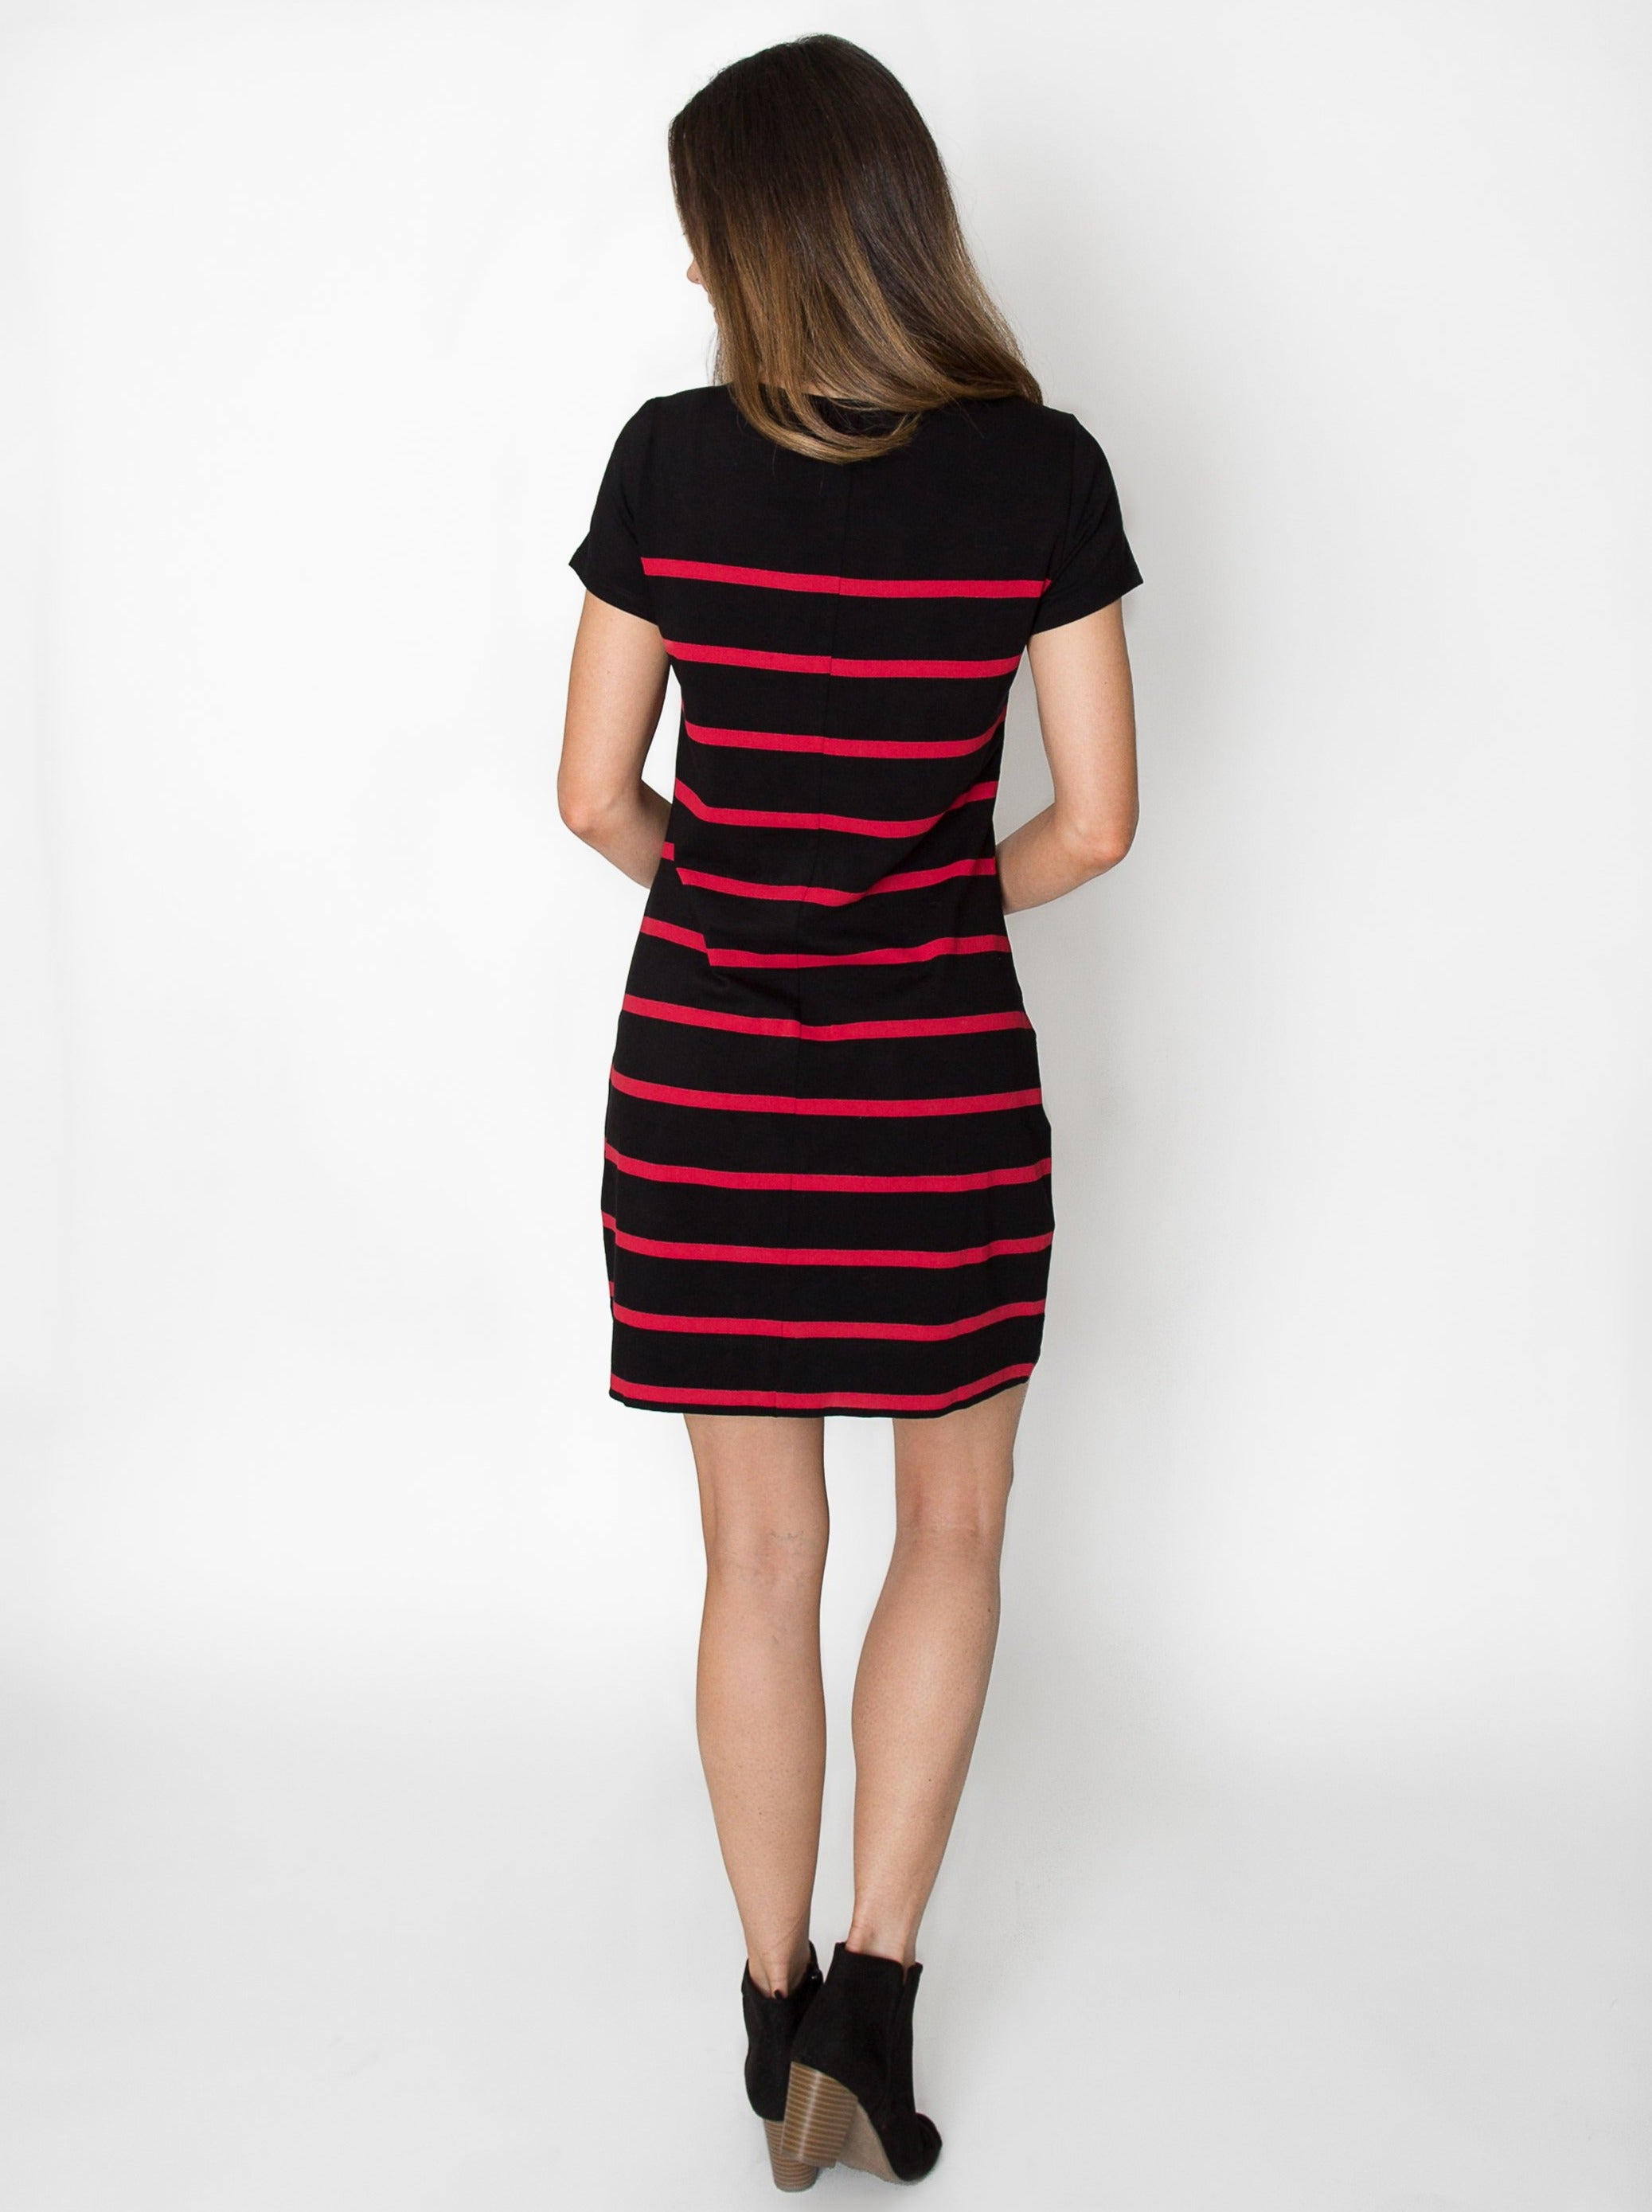 Short Sleeve Stripes | Dress | Red + Black